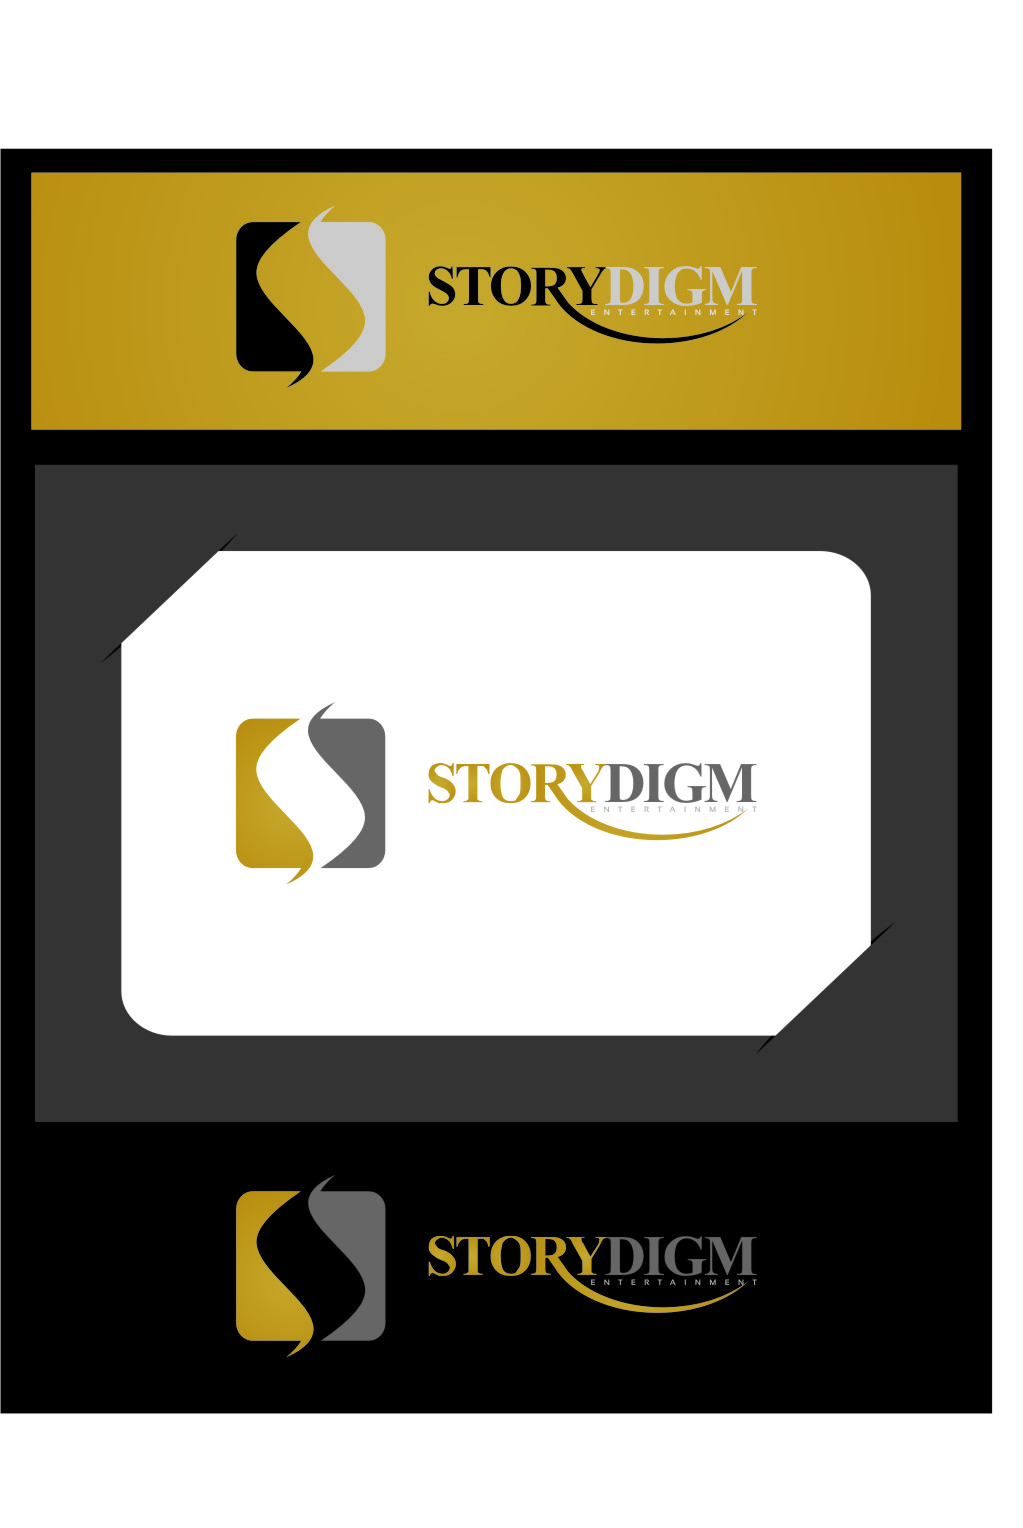 Logo Design by Ngepet_art - Entry No. 83 in the Logo Design Contest Inspiring Logo Design for Storydigm Entertainment.